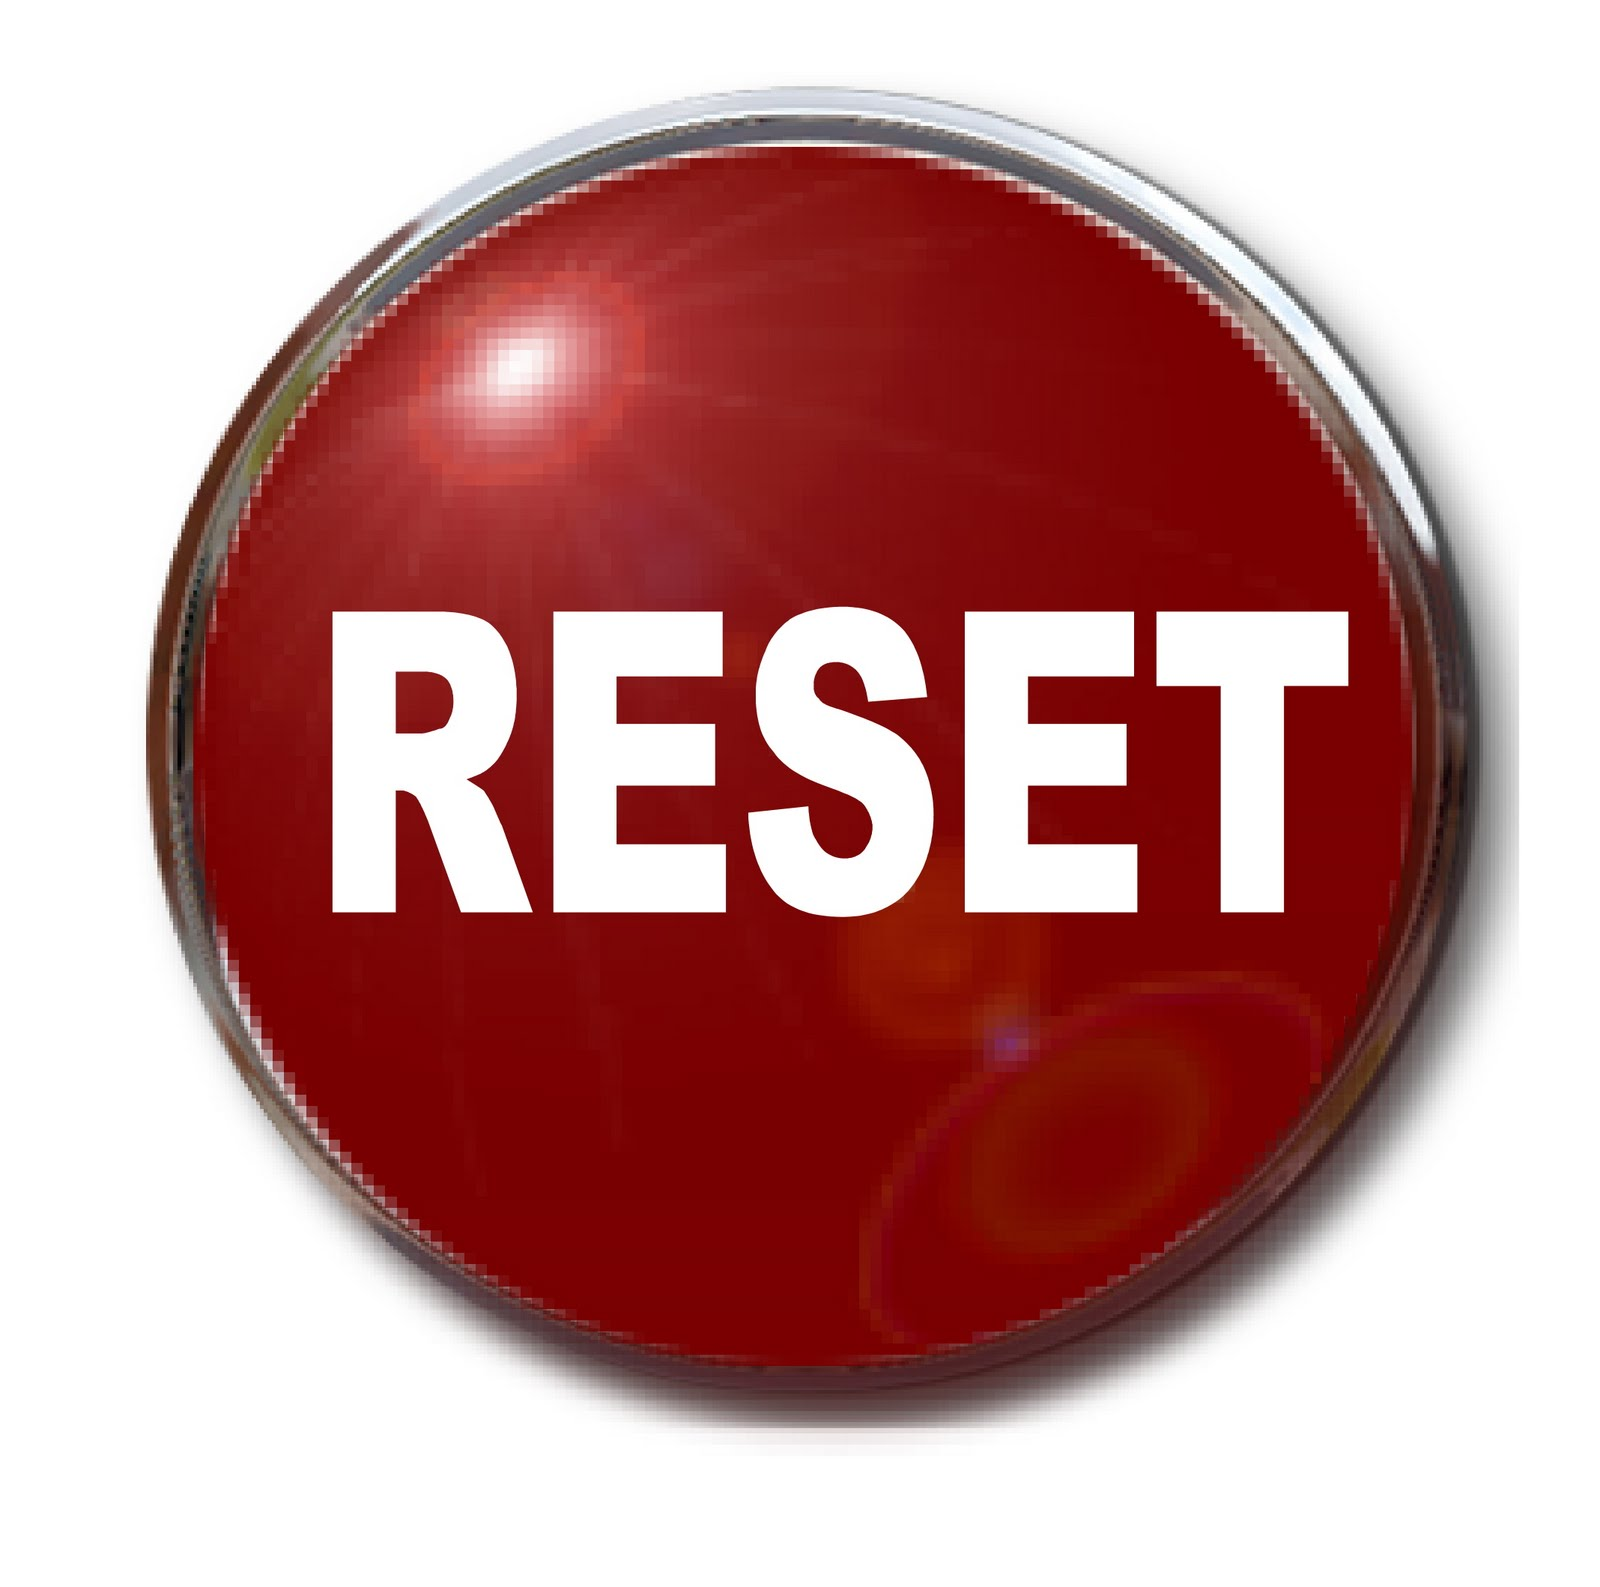 Pushing Reset Button